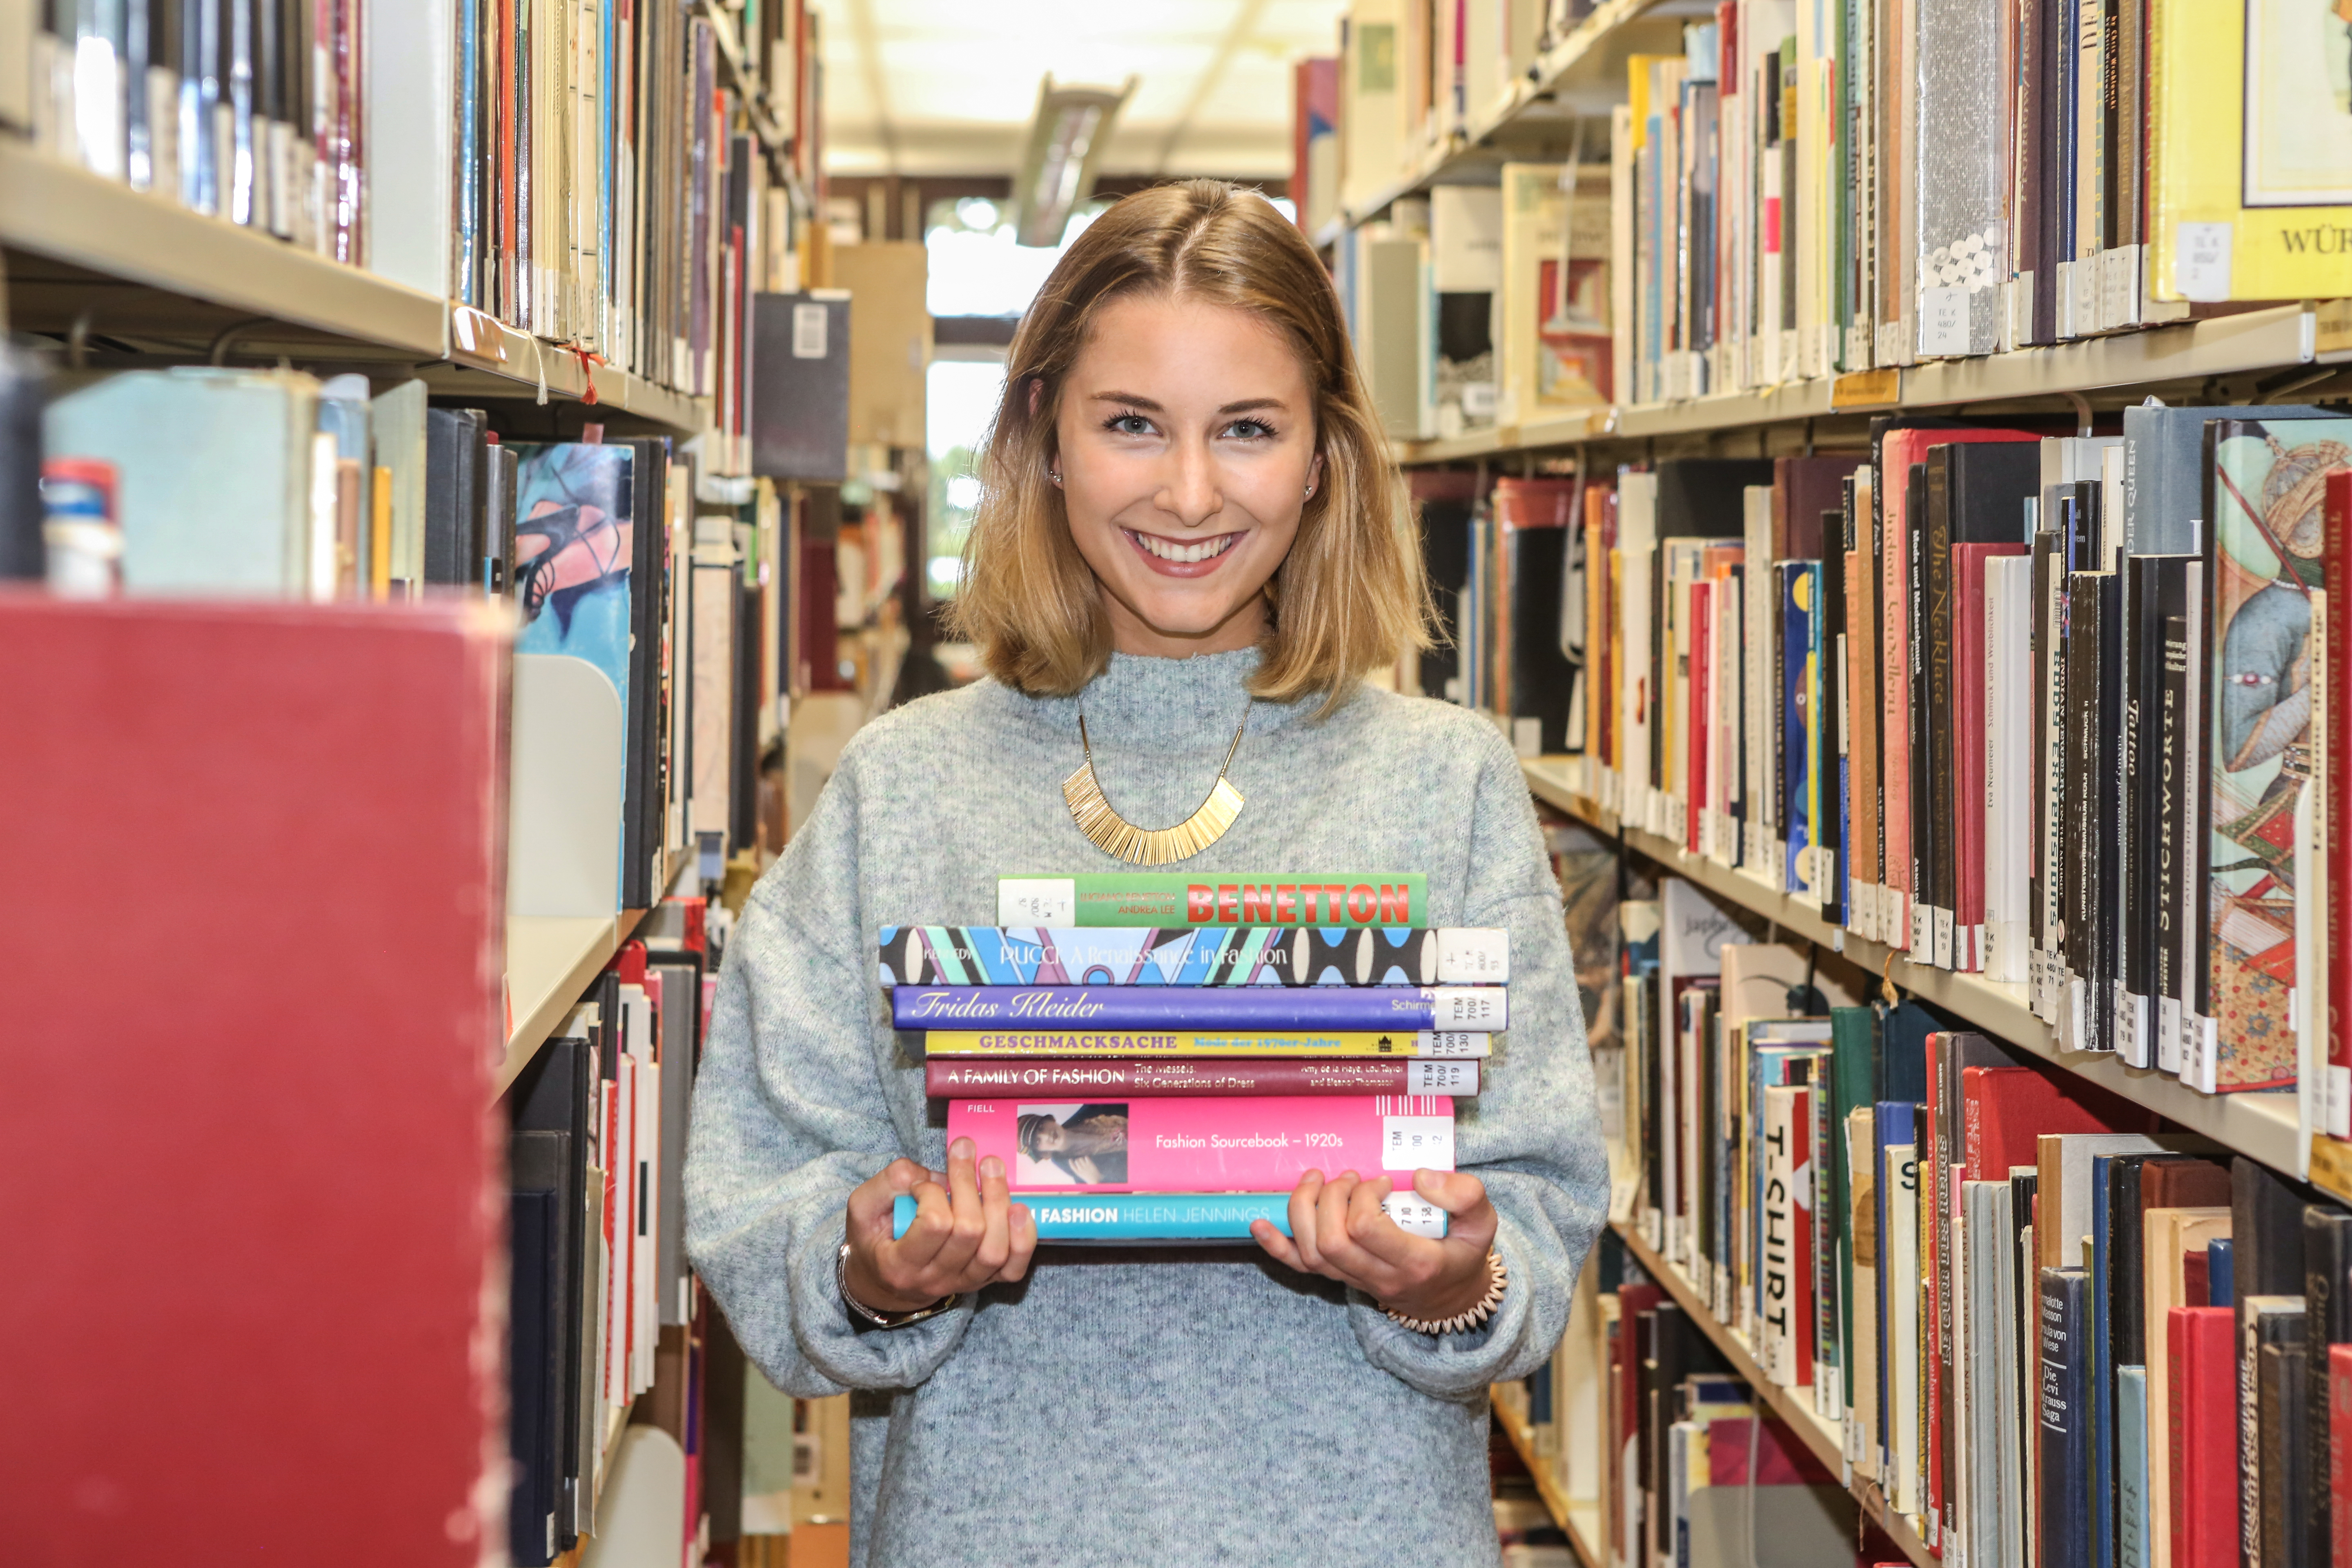 female student in the university library with books in her hands